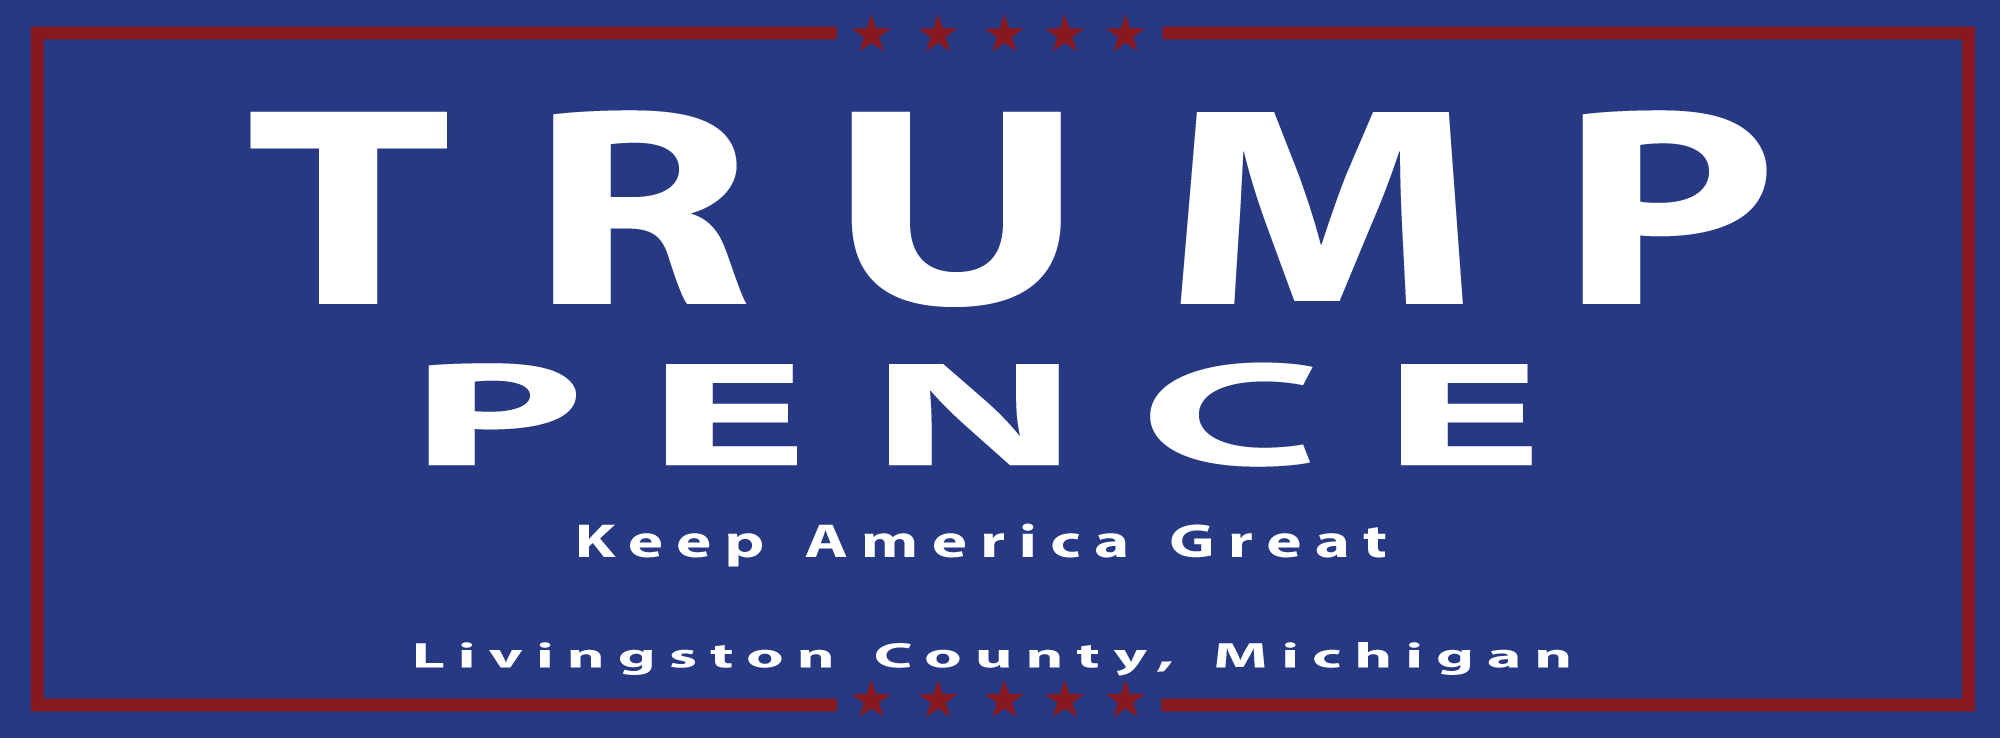 Keep America Great Masthead